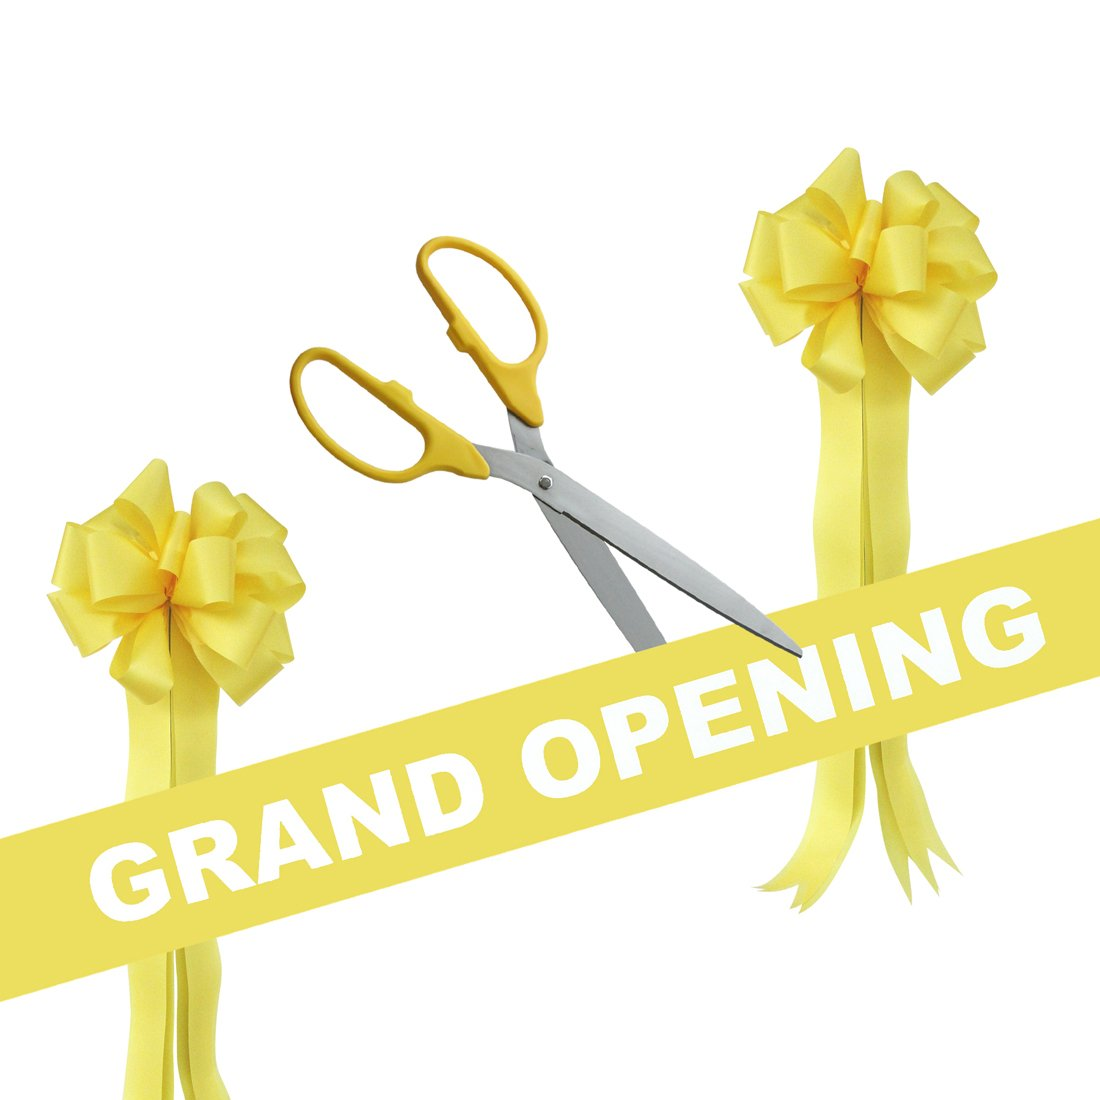 Grand Opening Kit - 25'' Yellow/Silver Ceremonial Ribbon Cutting Scissors with 5 Yards of 6'' Yellow Grand Opening Ribbon and 2 Yellow Bows by Engraving, Awards & Gifts